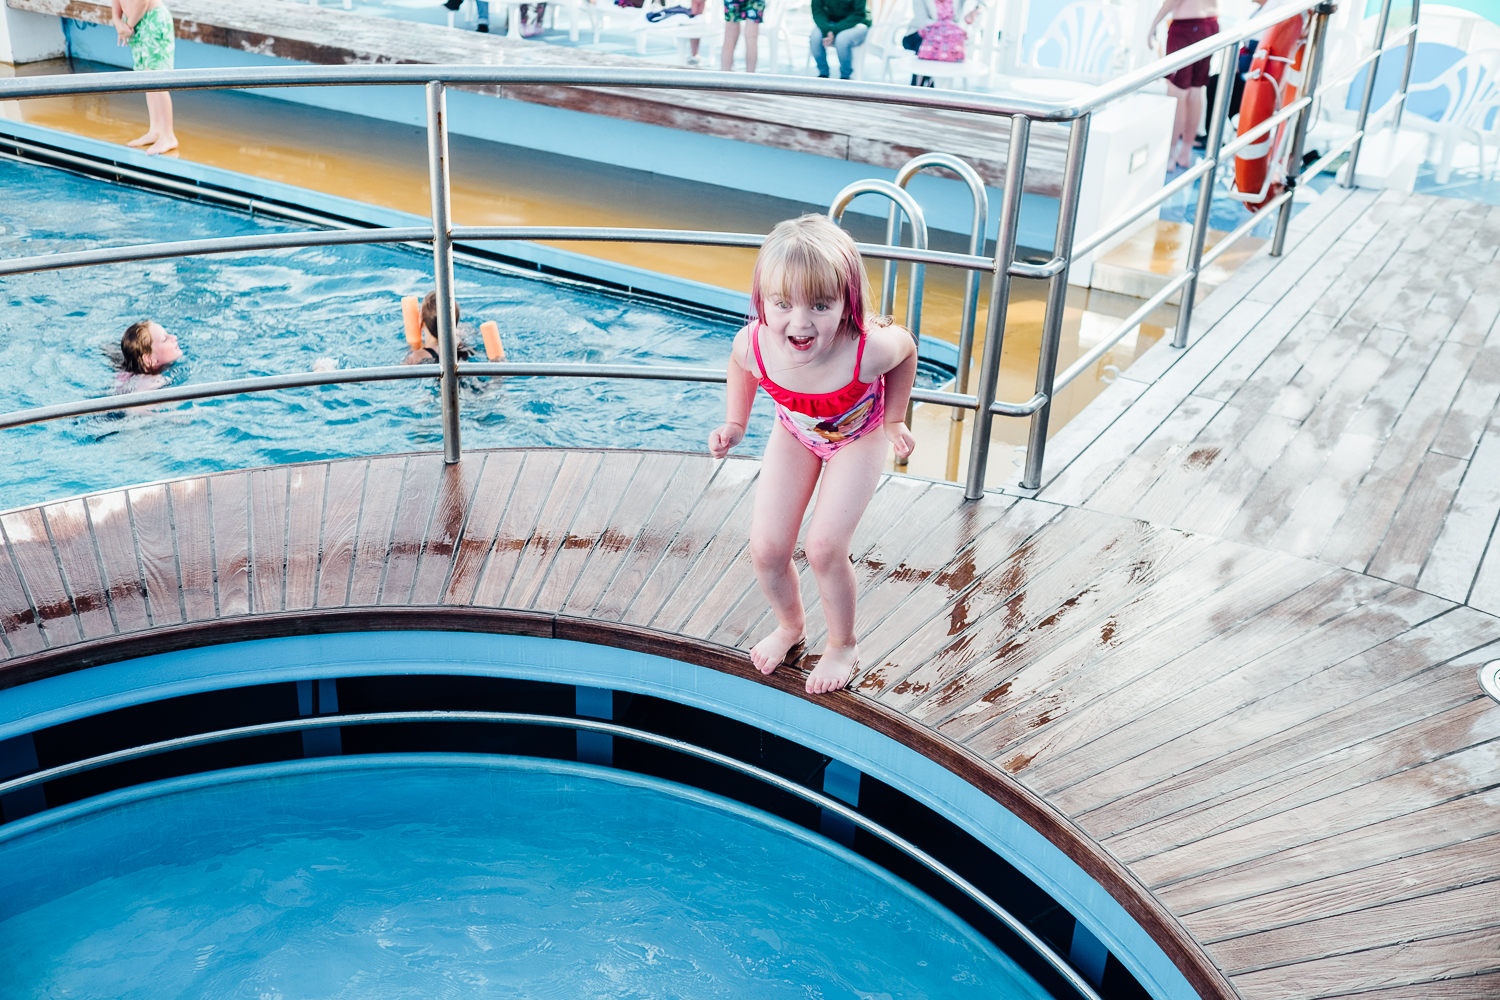 Willow jumping in to the paddling pool, bigger pool behind © Andrew Newson